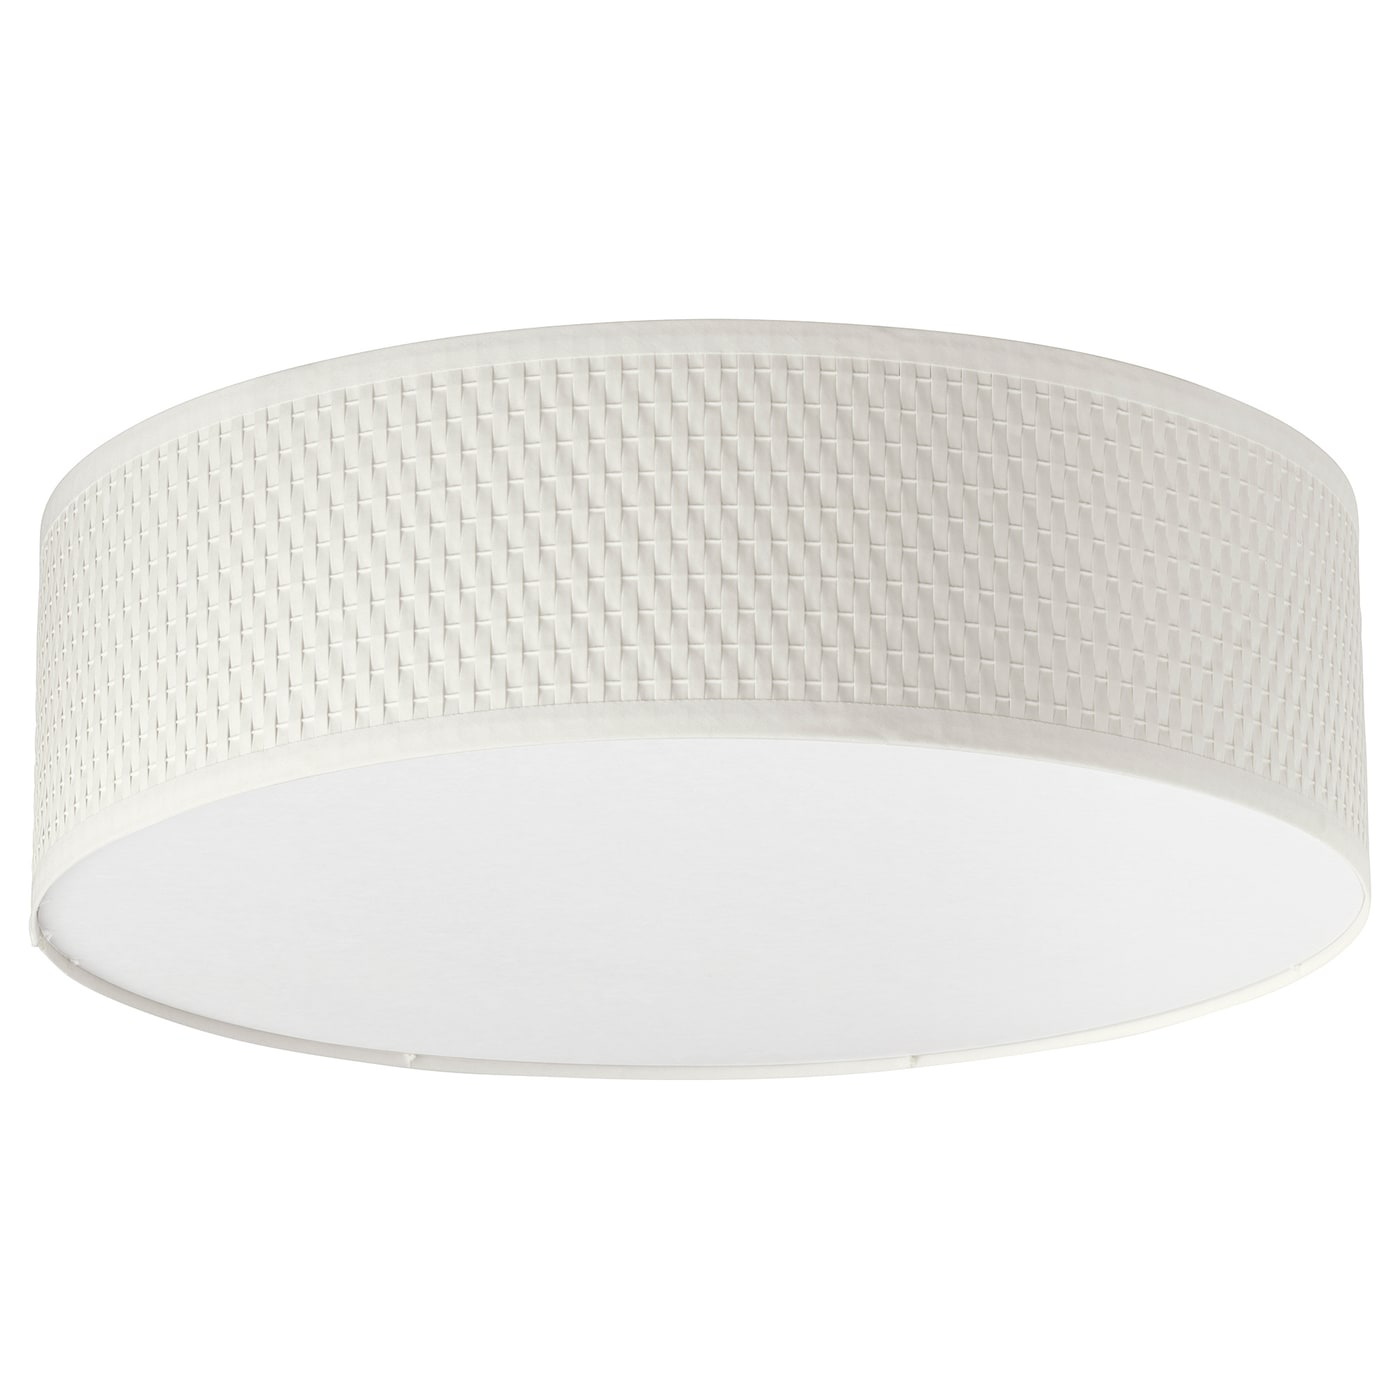 Led Ceiling Lights Shop At Ikea Ireland Lightceilingrose2lightsjpg Alng Lamp Diffused Light That Provides Good General In The Room